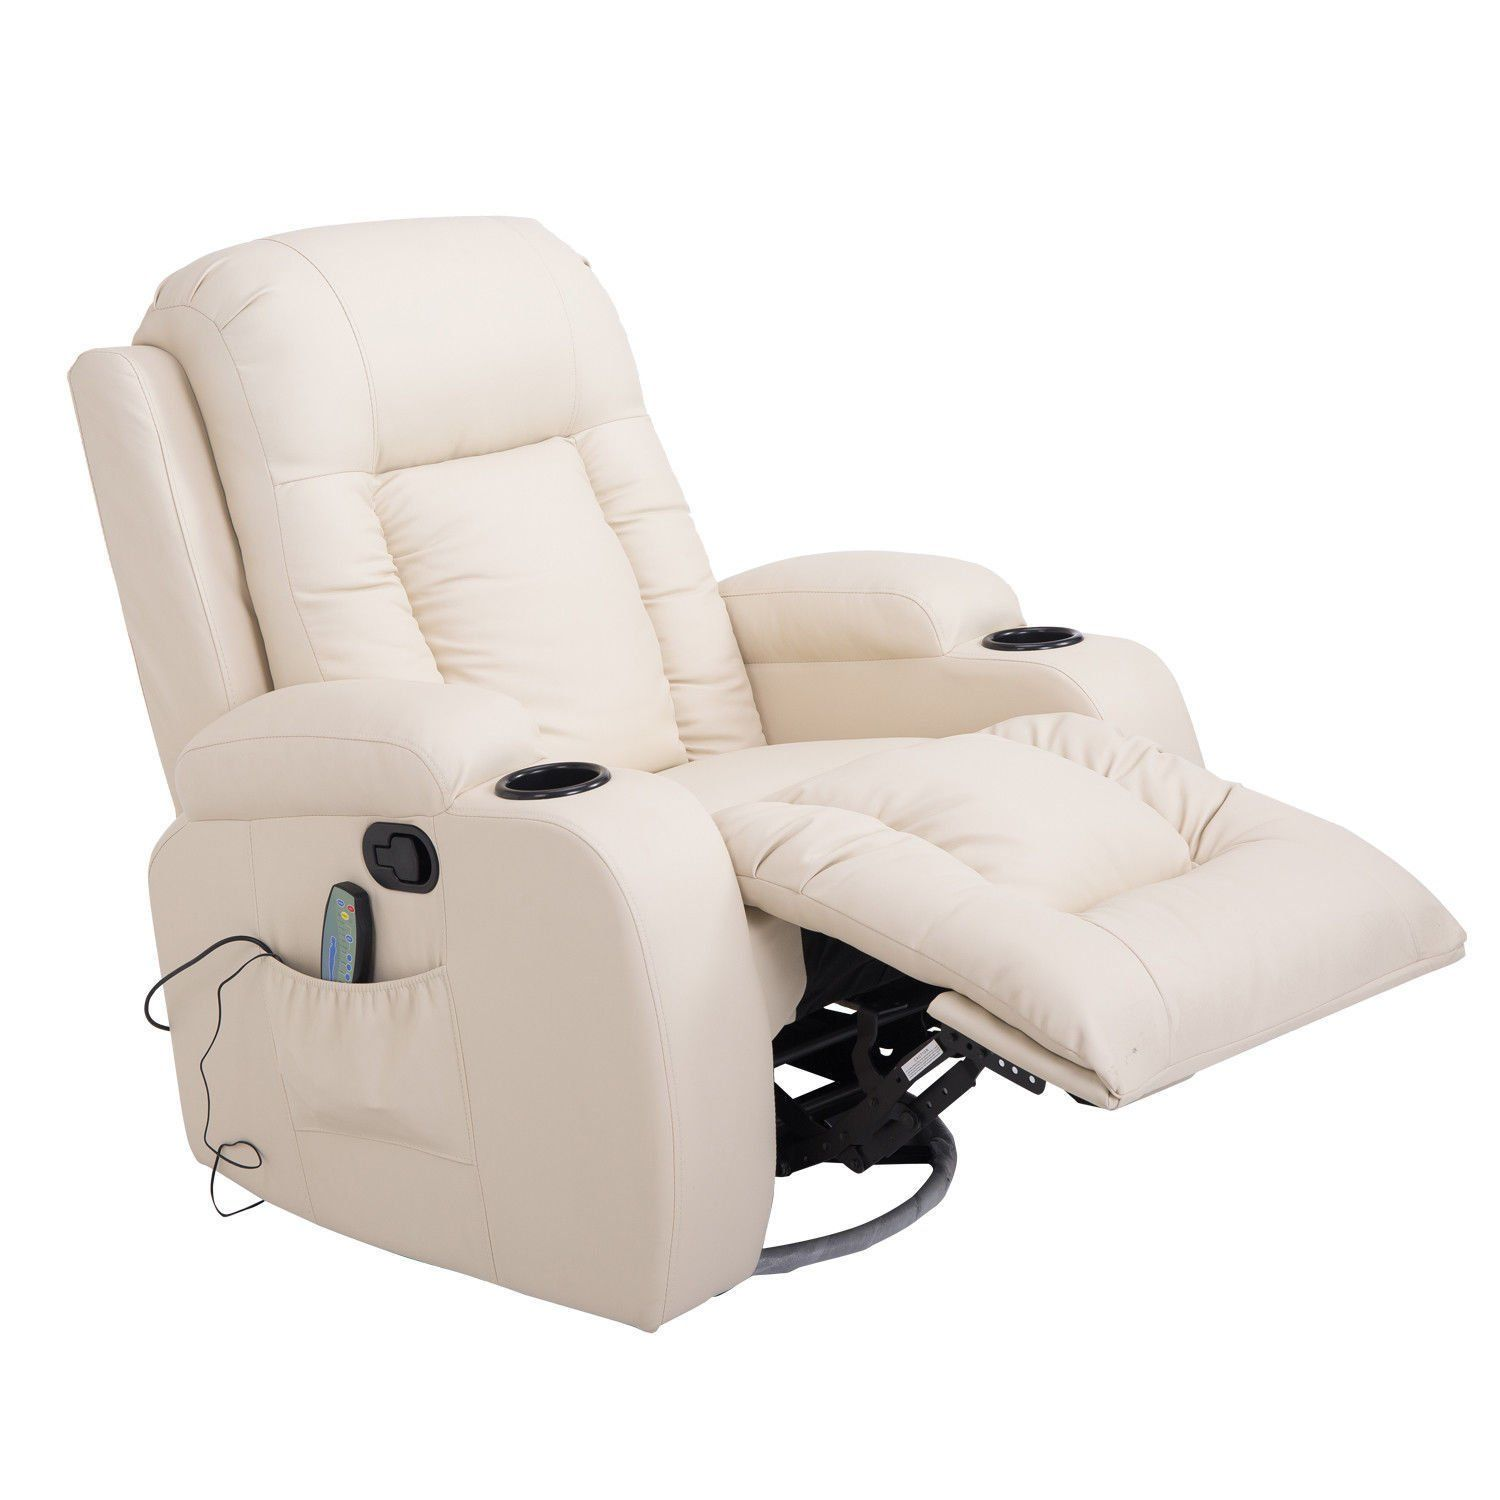 Massage Sofa Chair Recliner Rocking Armchair Lounge Heated Deluxe Leather You Can Get More Details By With Images Recliner Chair Outdoor Lounge Chair Cushions Recliner